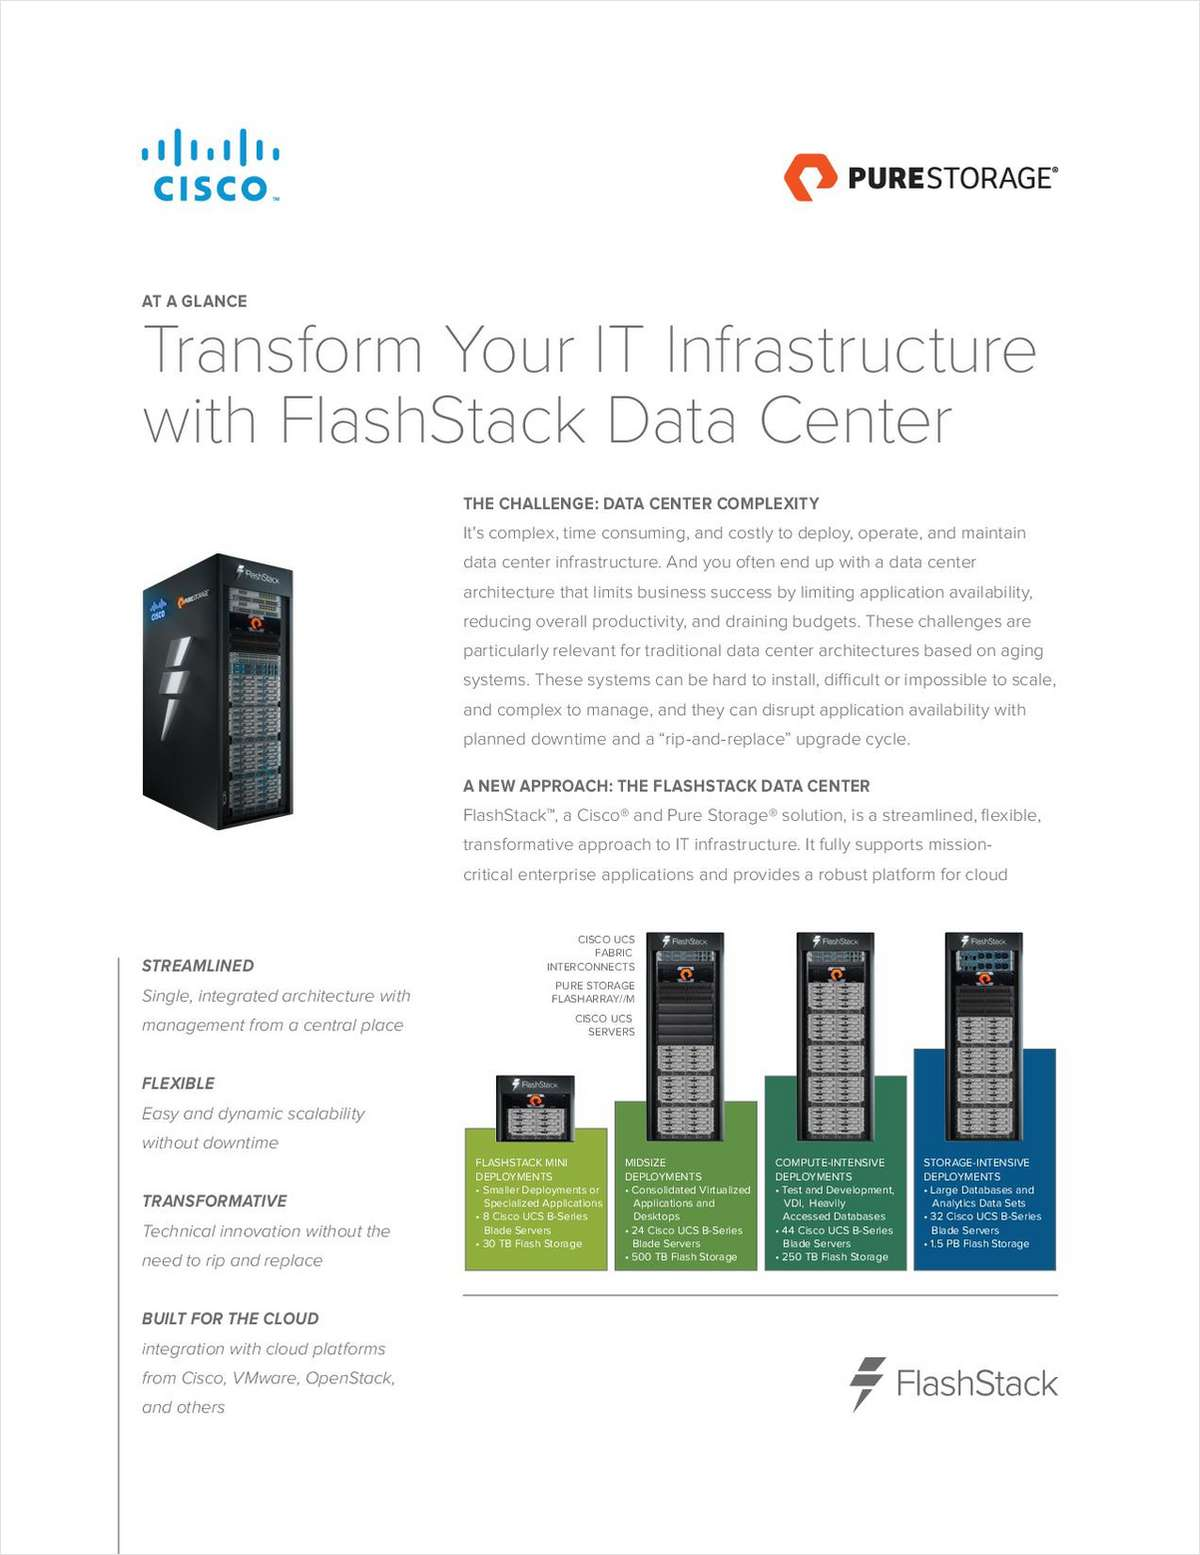 Transform Your IT Infrastructure with FlashStack Data Center